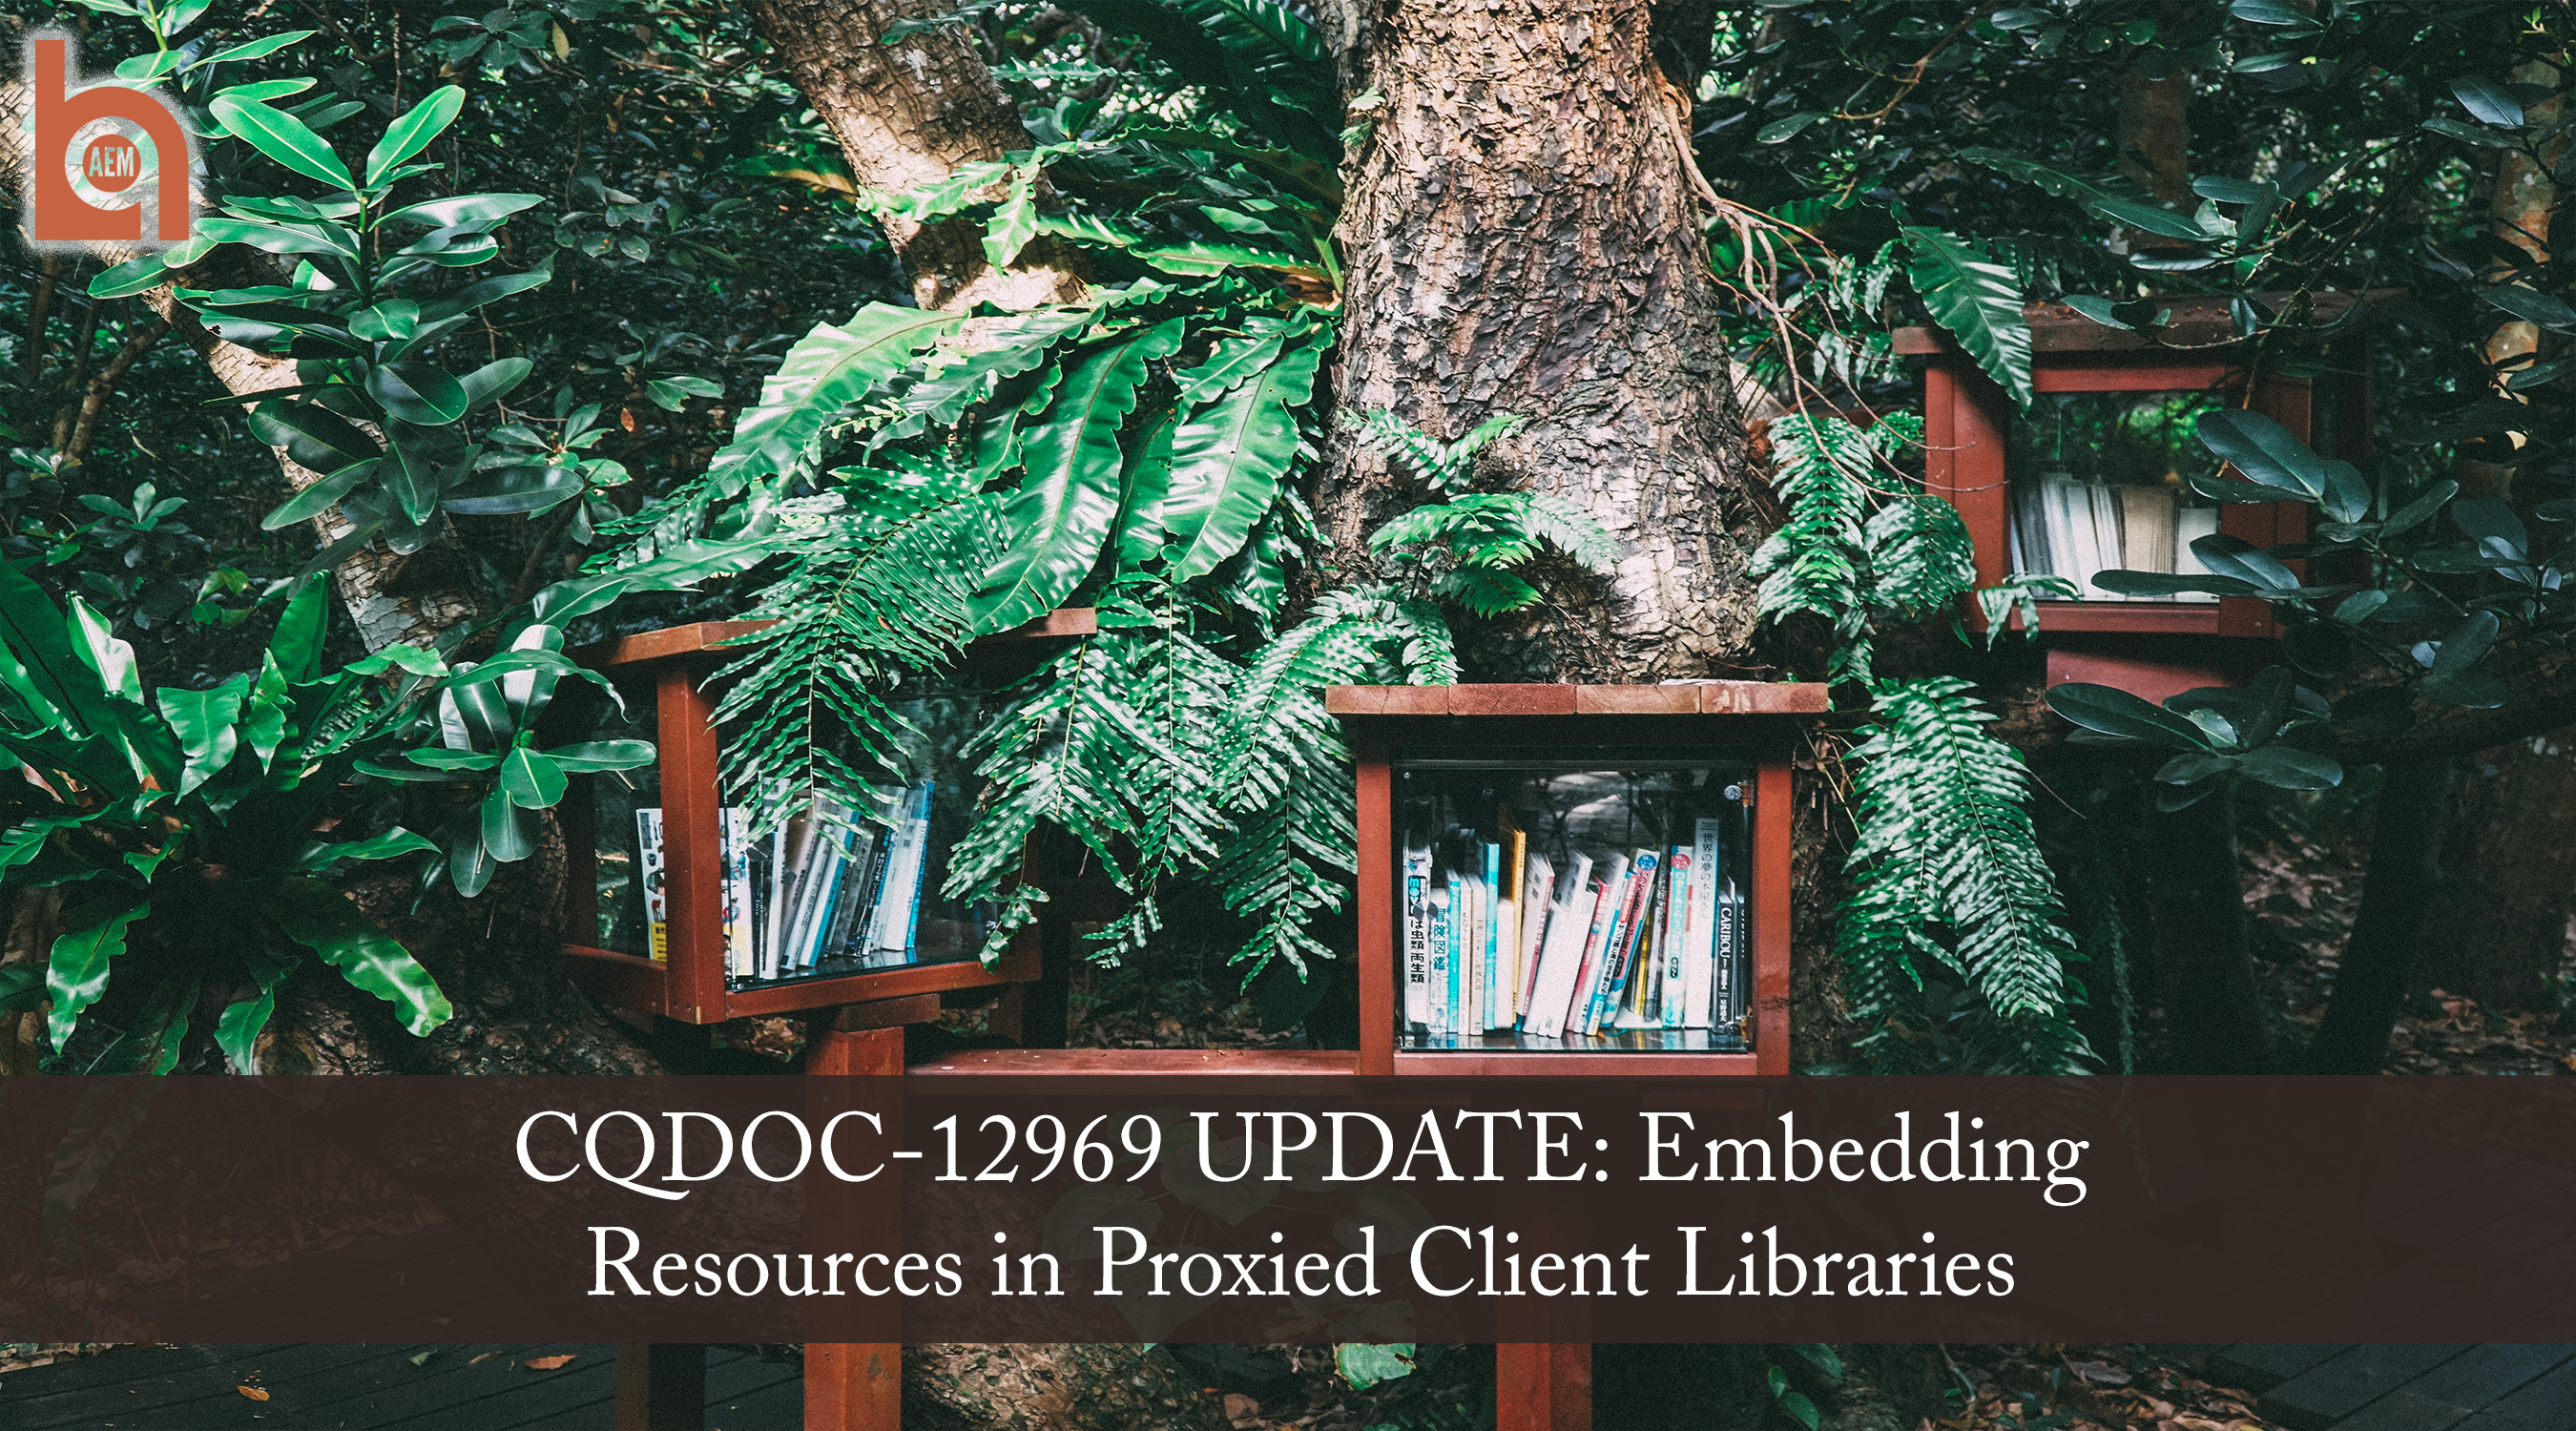 CQDOC-12969 UPDATE: Embedding Resources in Proxied Client Libraries